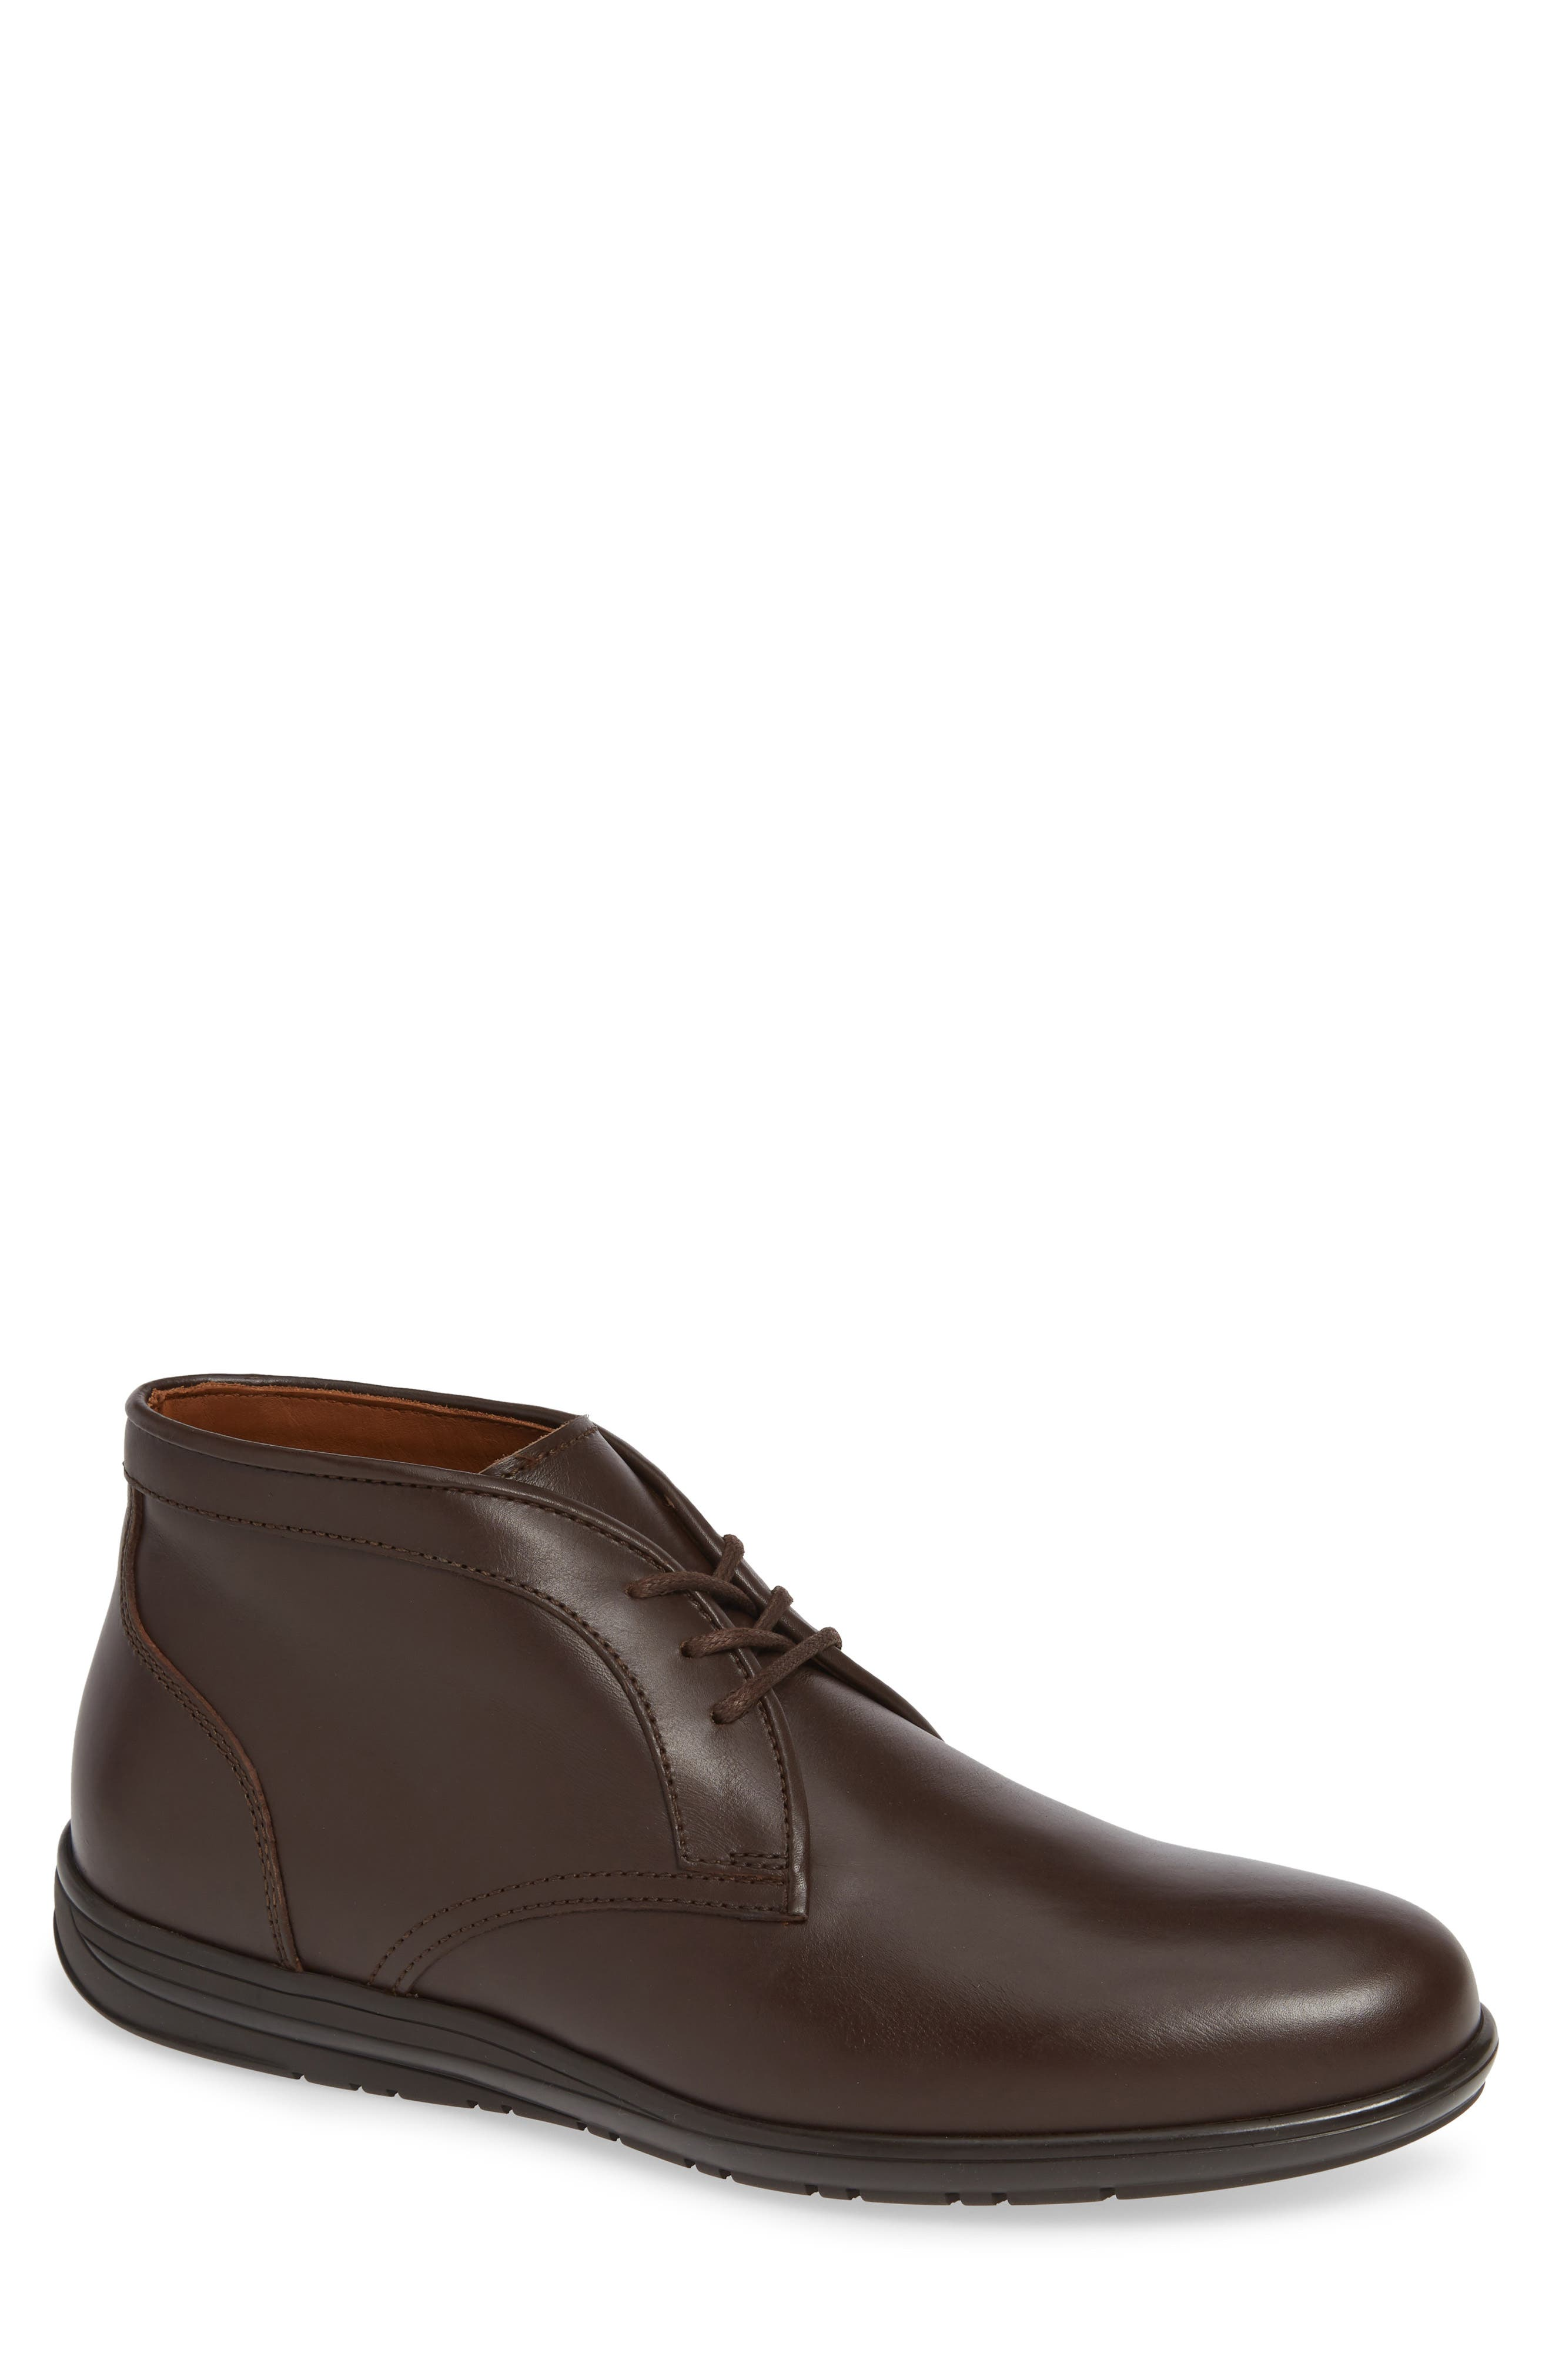 Aquatalia Nicholas Weatherproof Chukka Boot- Brown